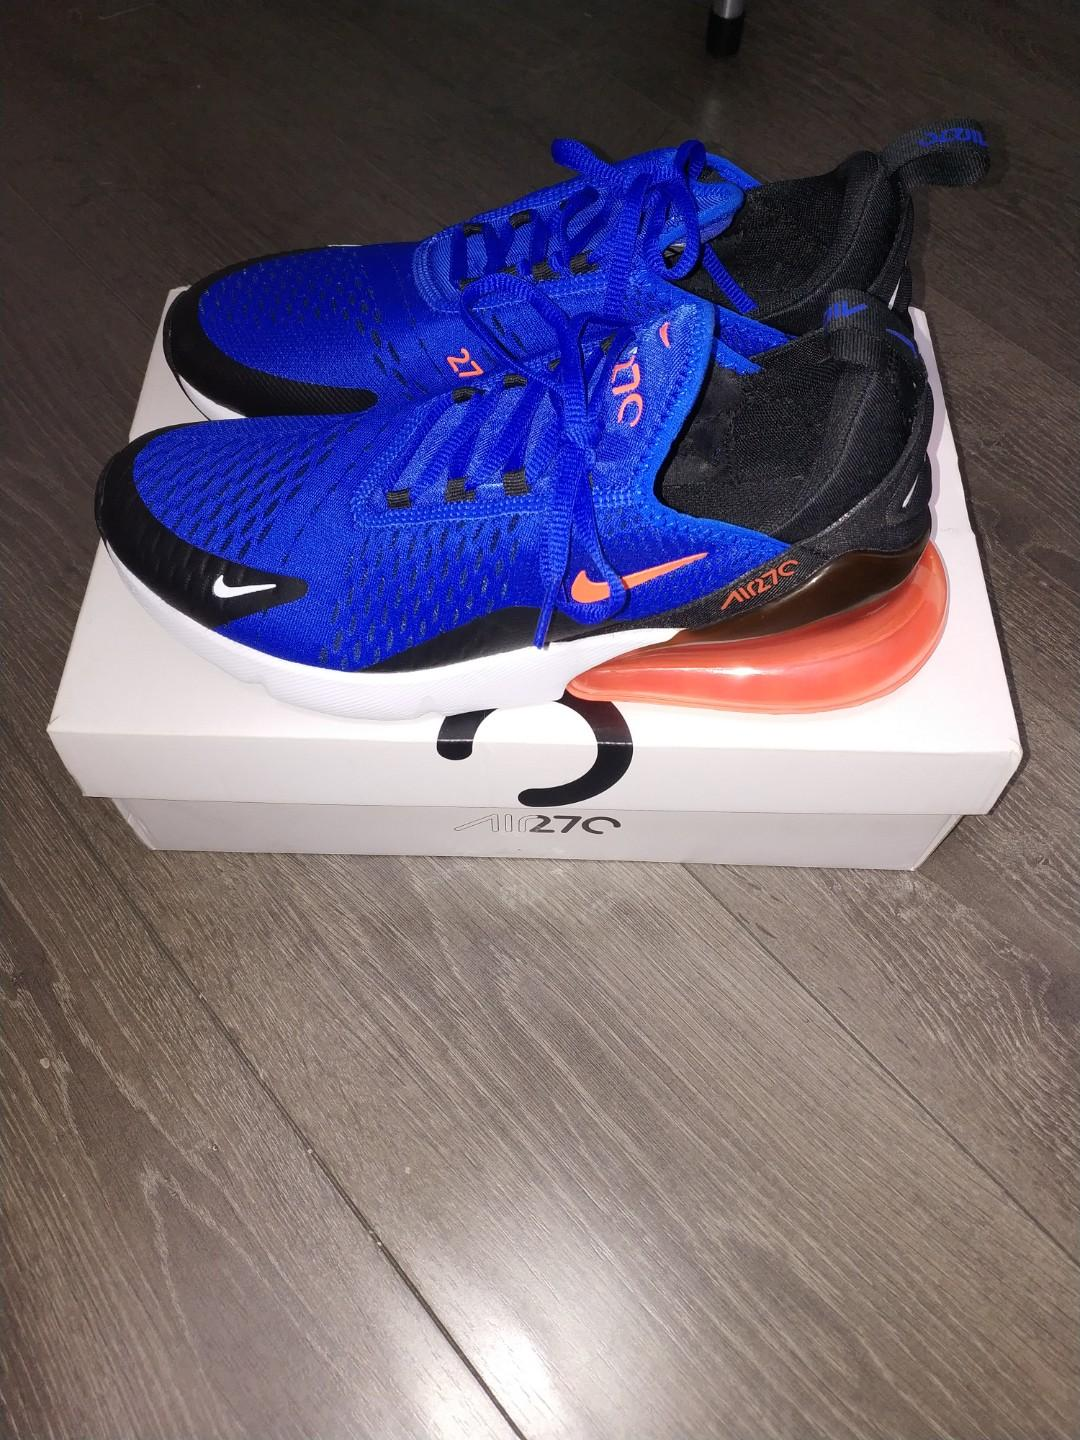 Nike Air Max 270, Men's Fashion, Footwear, Sneakers on Carousell